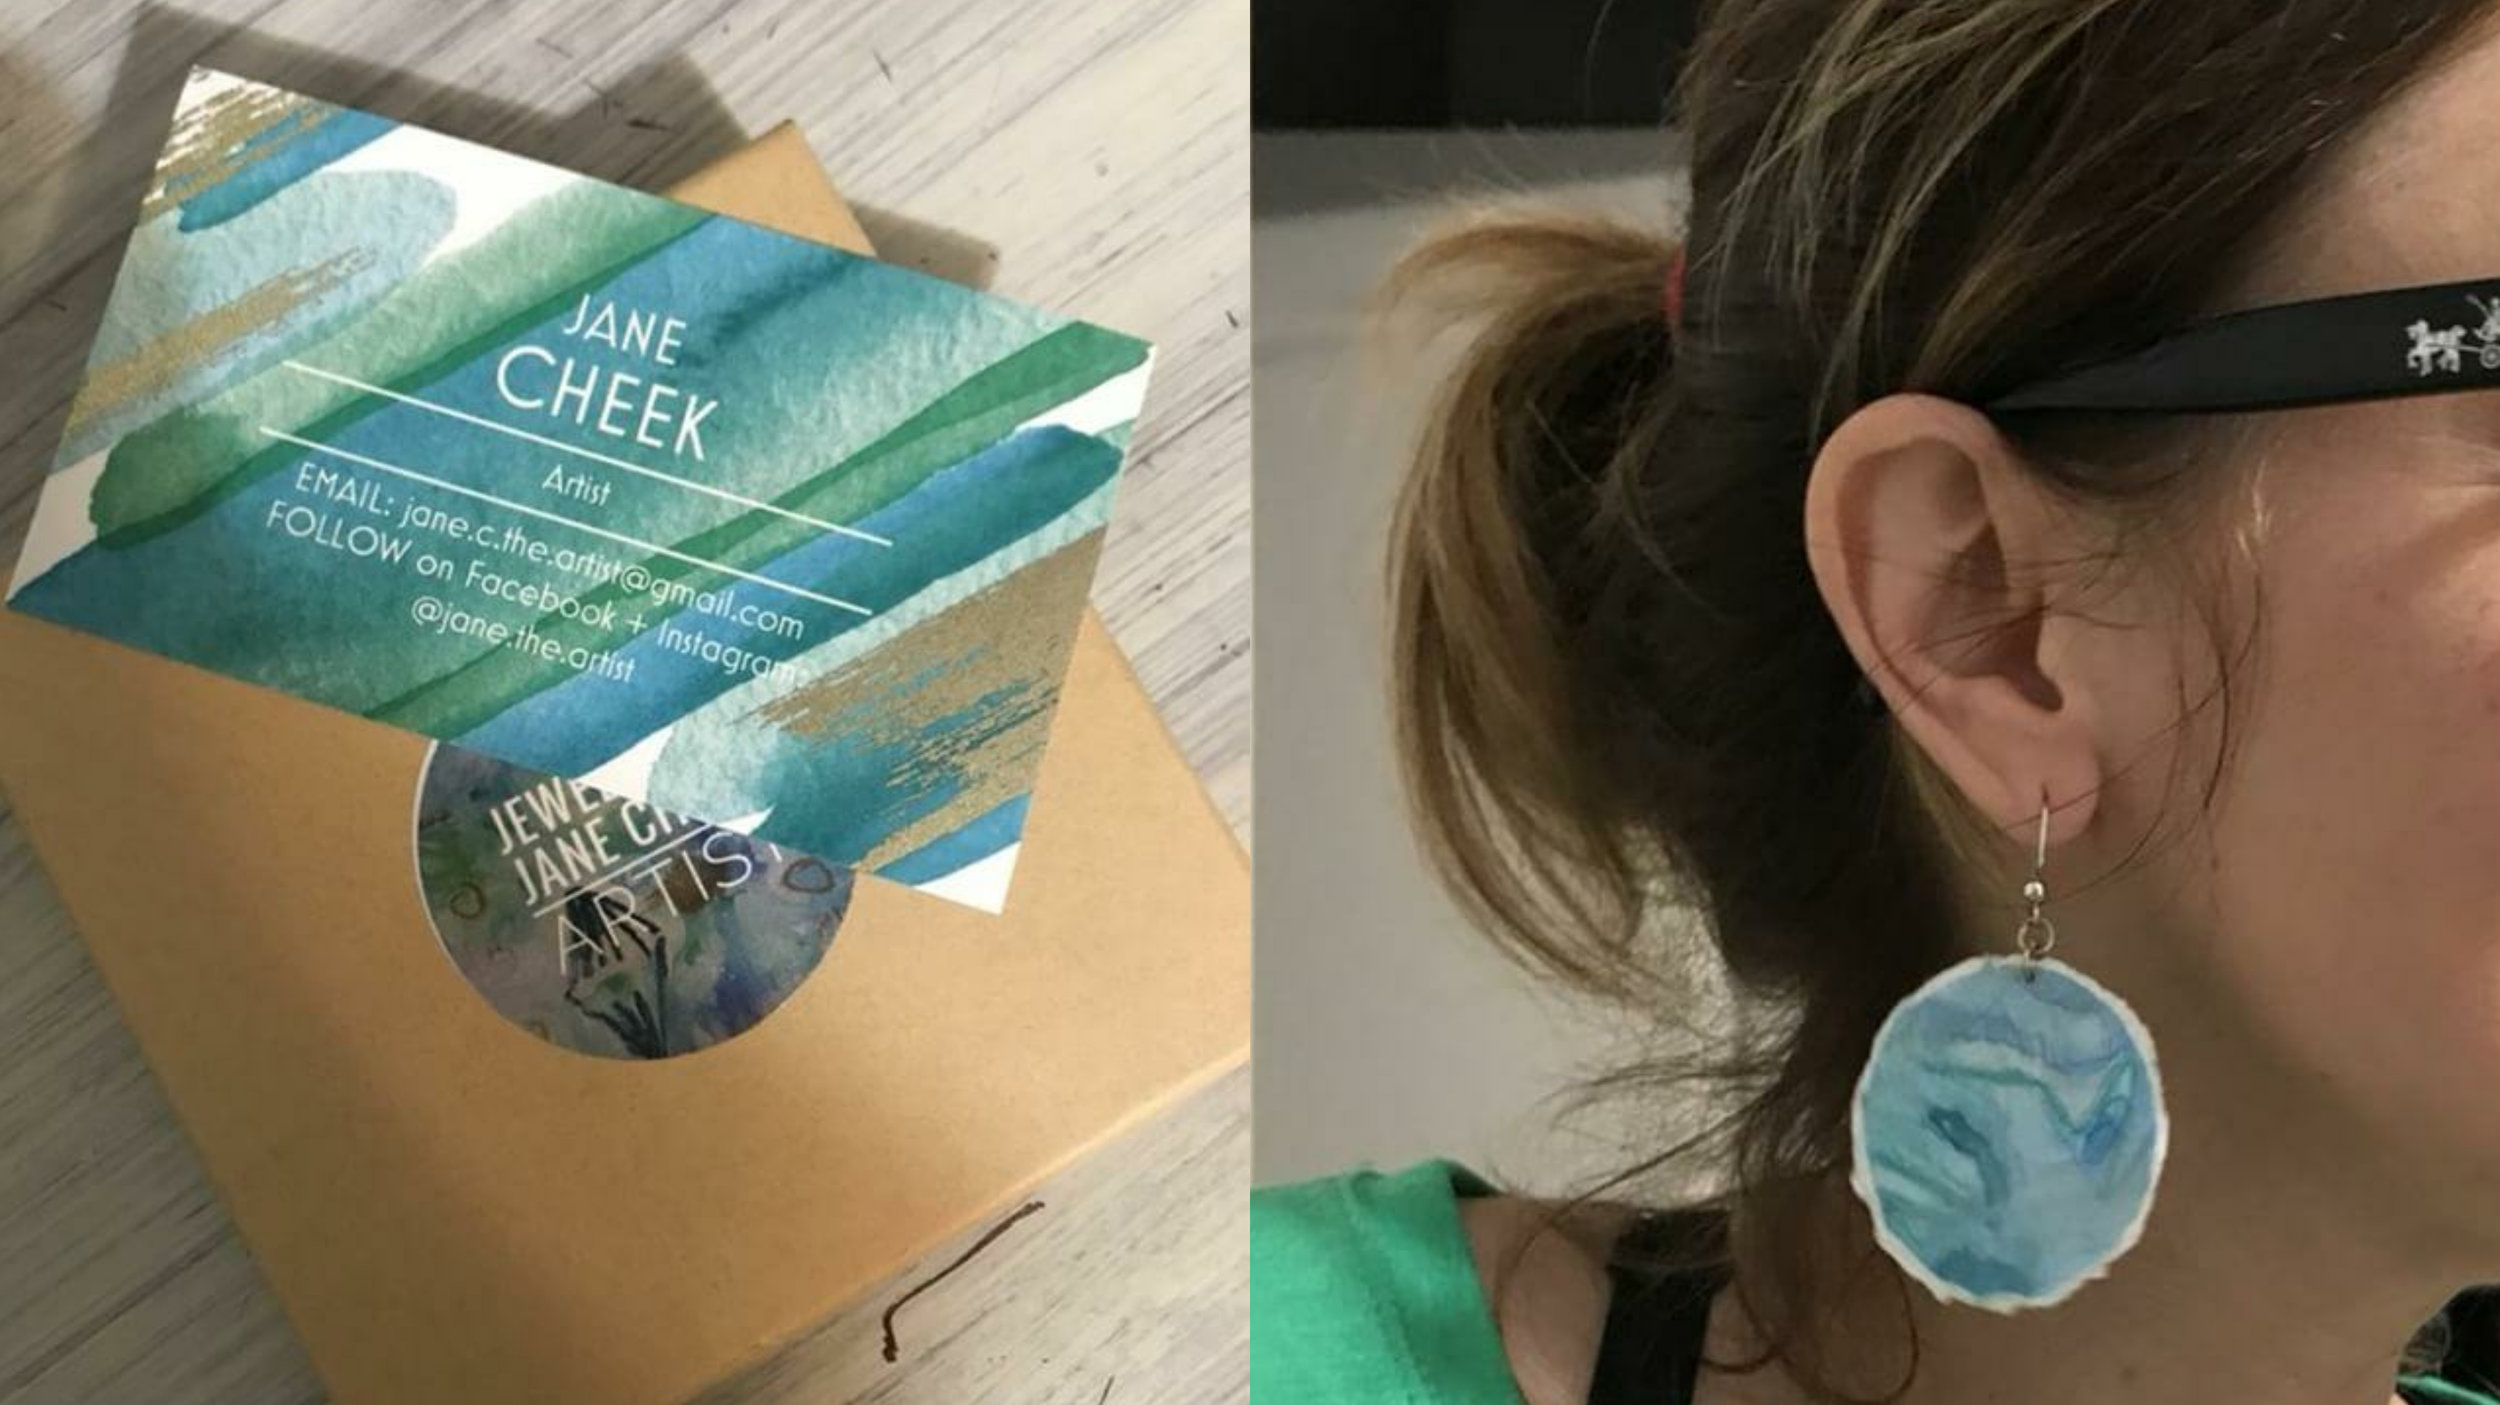 Love these gems!! - I was so excited when I recieved these earrings in the mail!!! They are so artsy and perfect for my style.  - Melissa O.